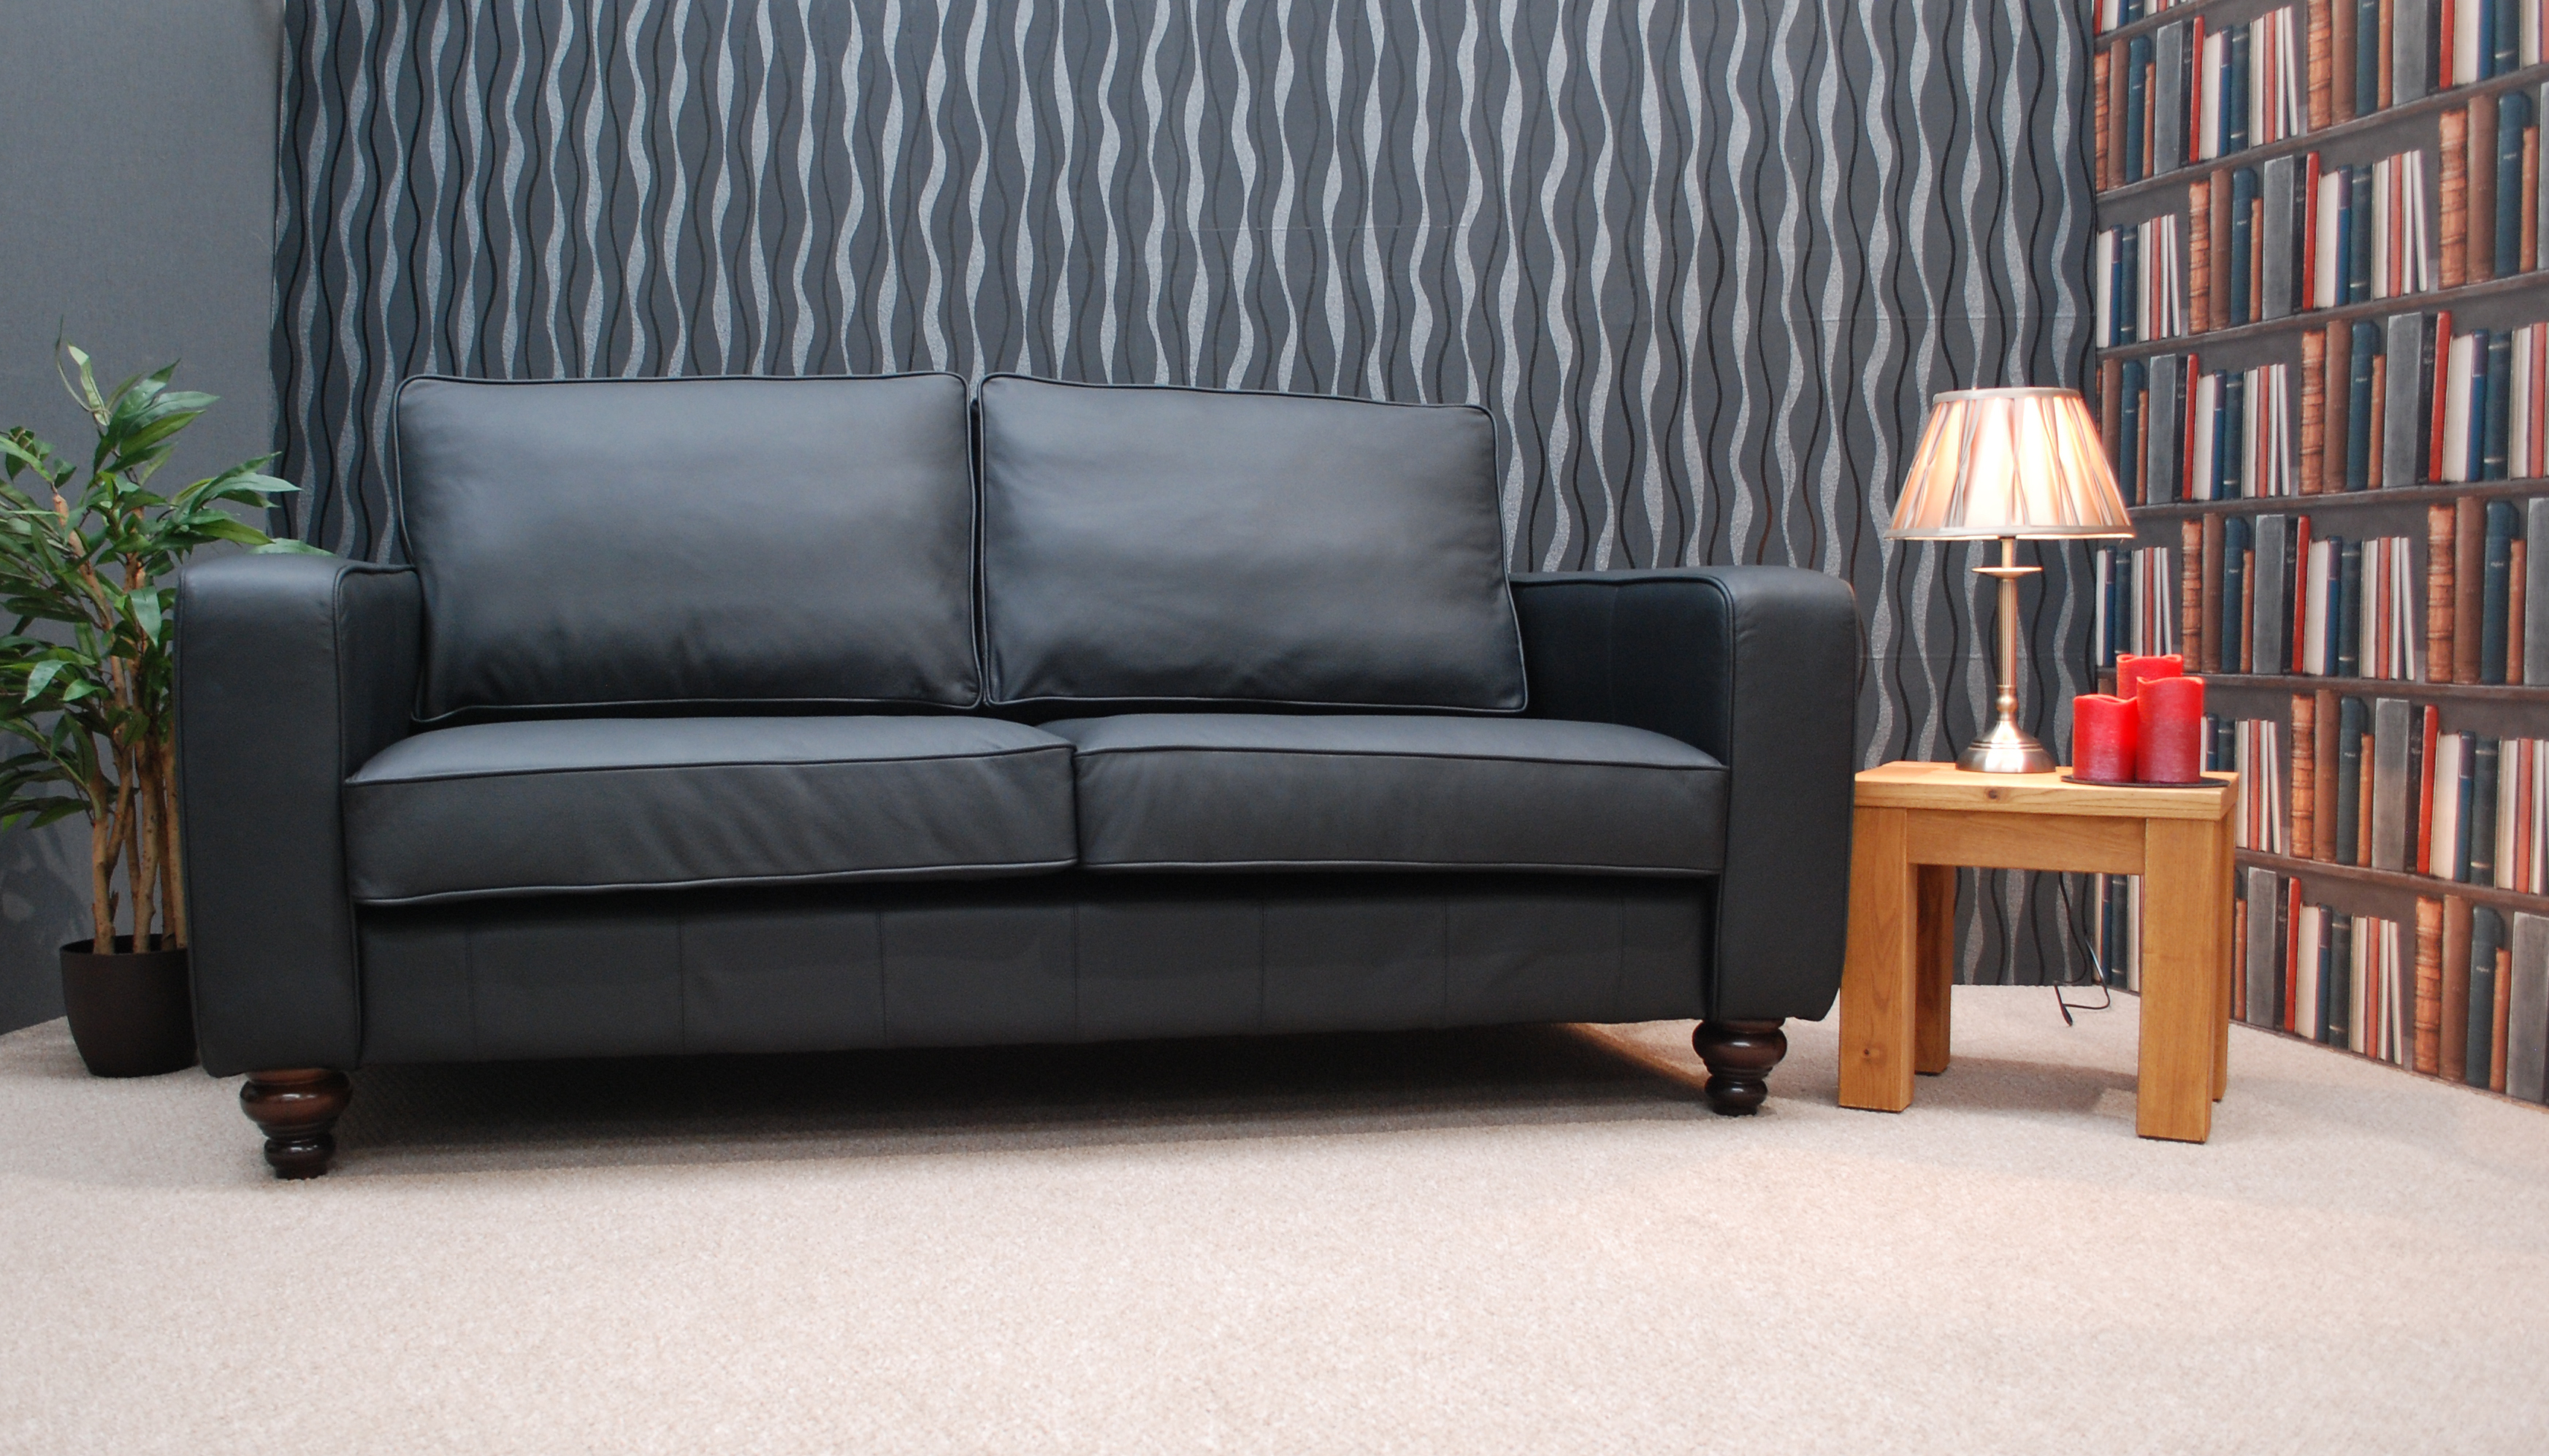 Derry Contemporary Leather Sofas Handmade in Manchester Choice